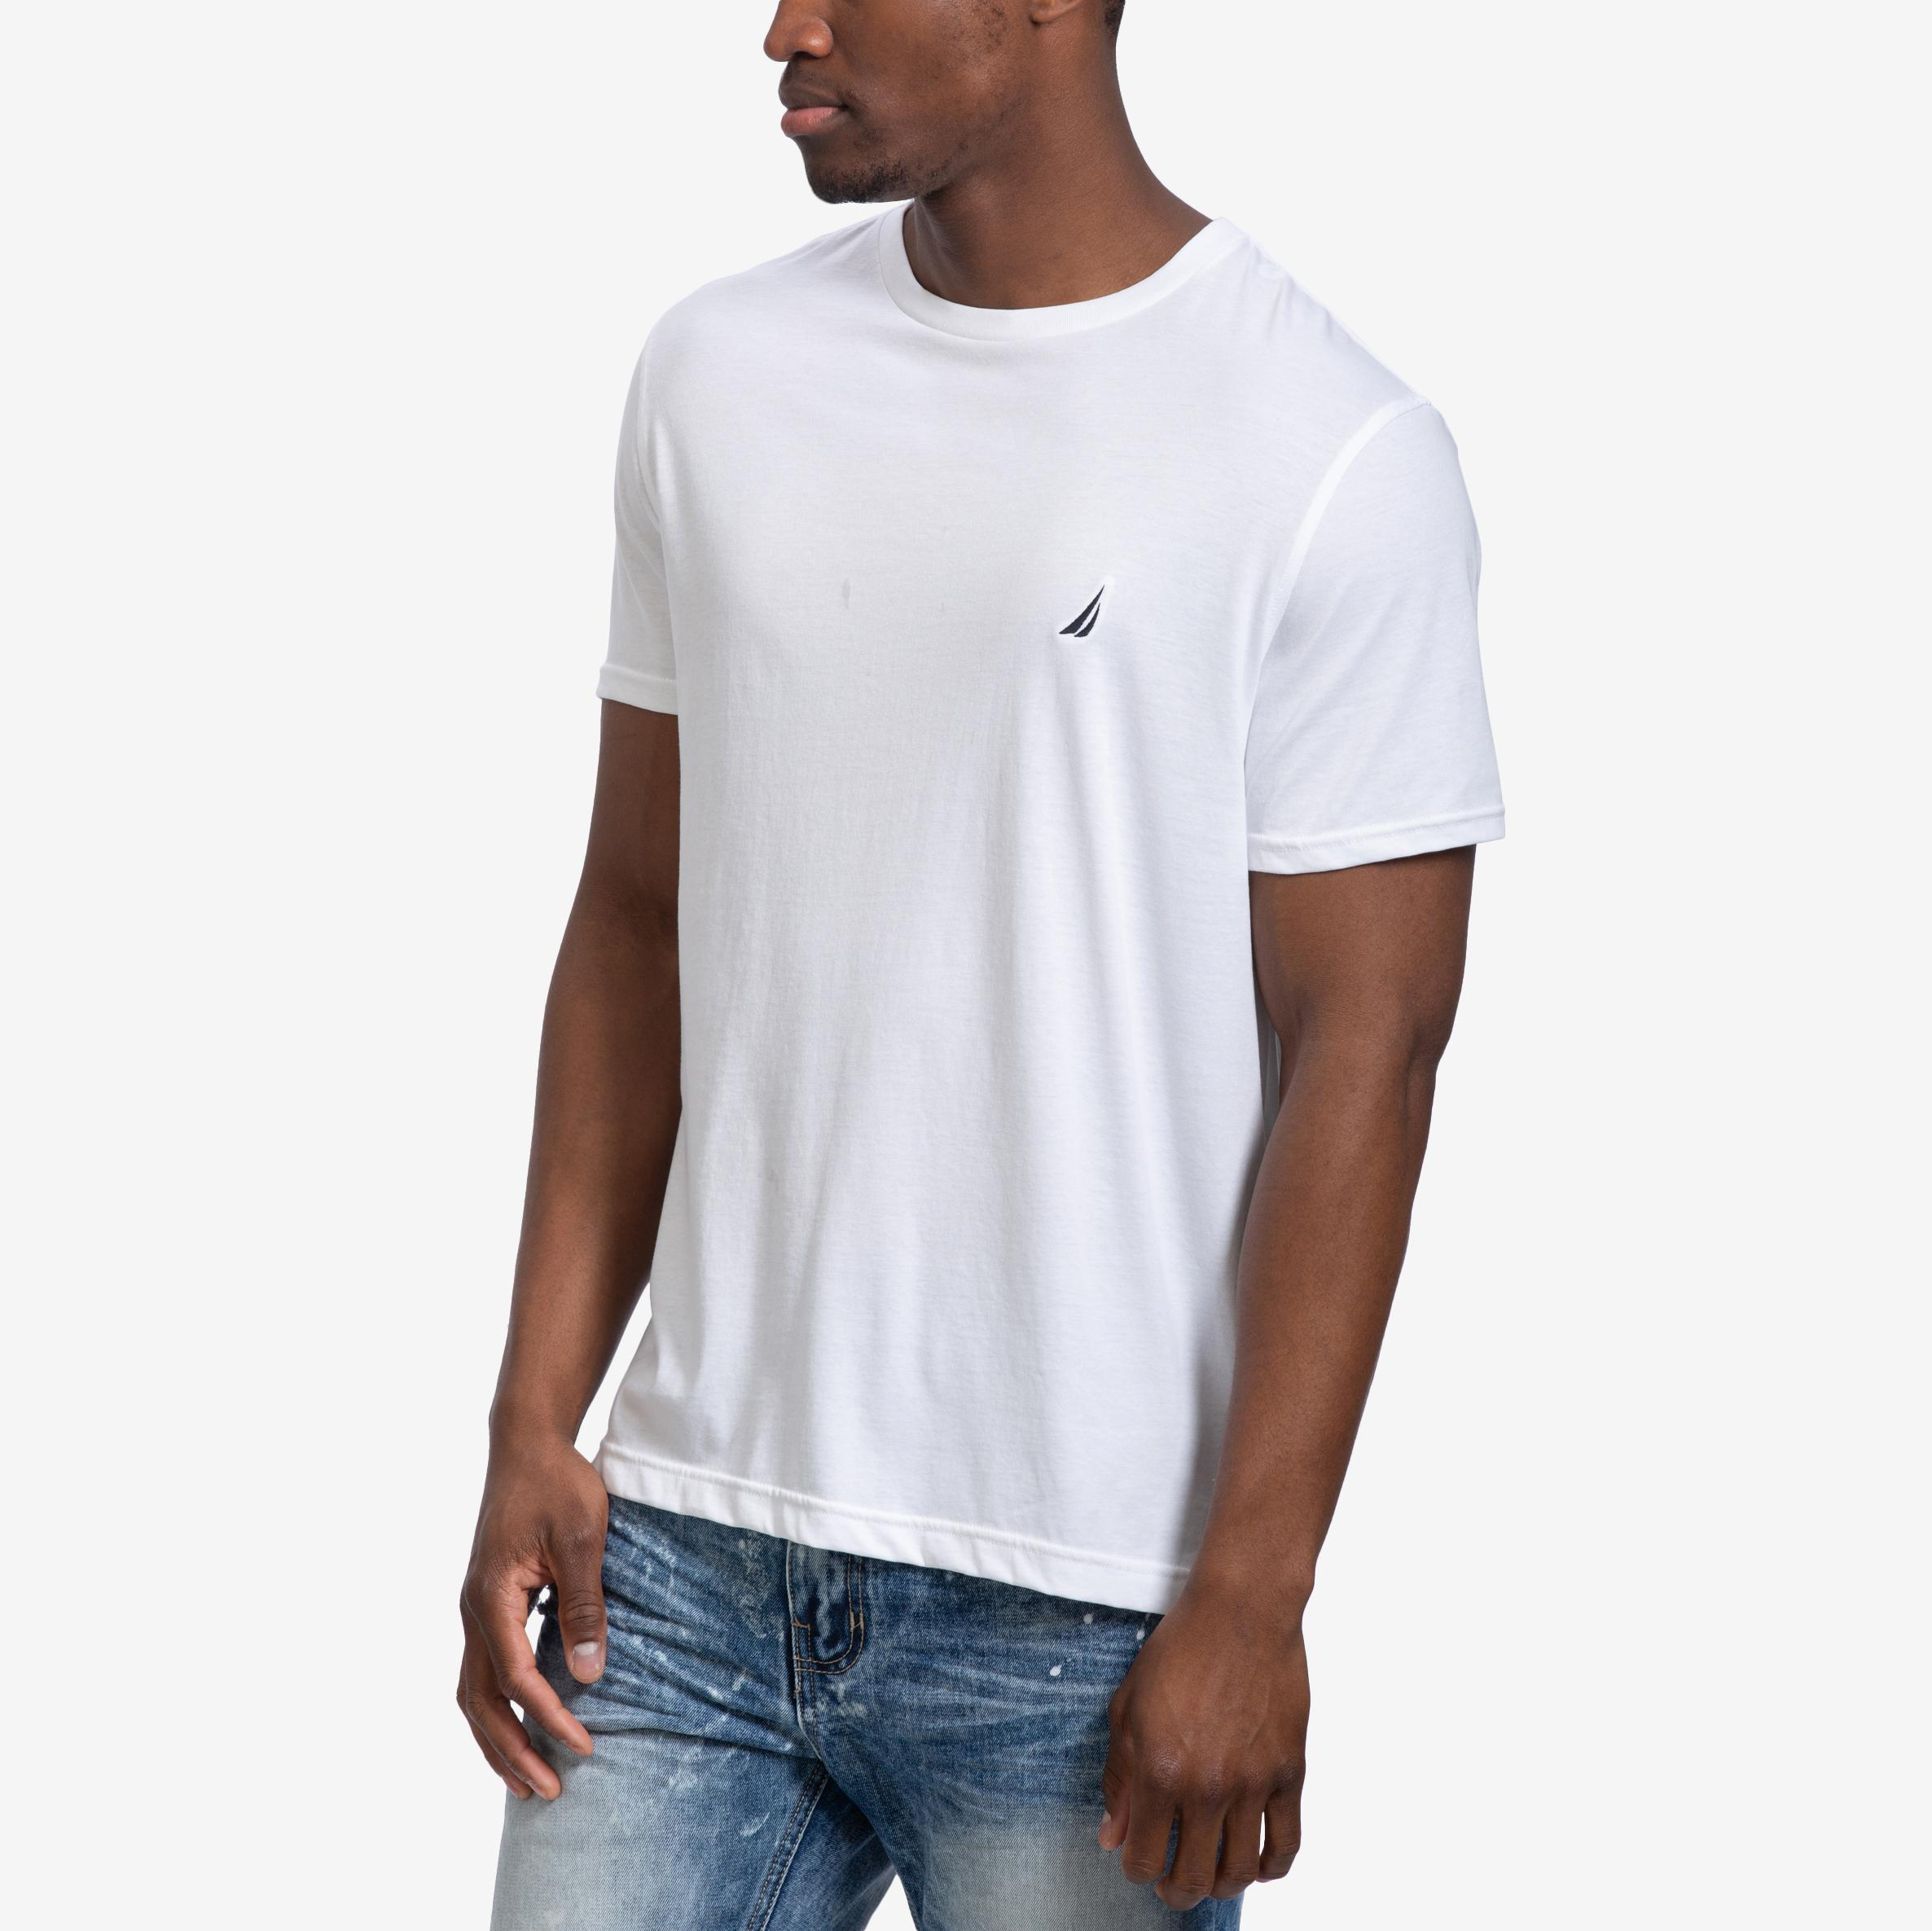 Men's Solid Crew Neck Short Sleeve T- Shirt